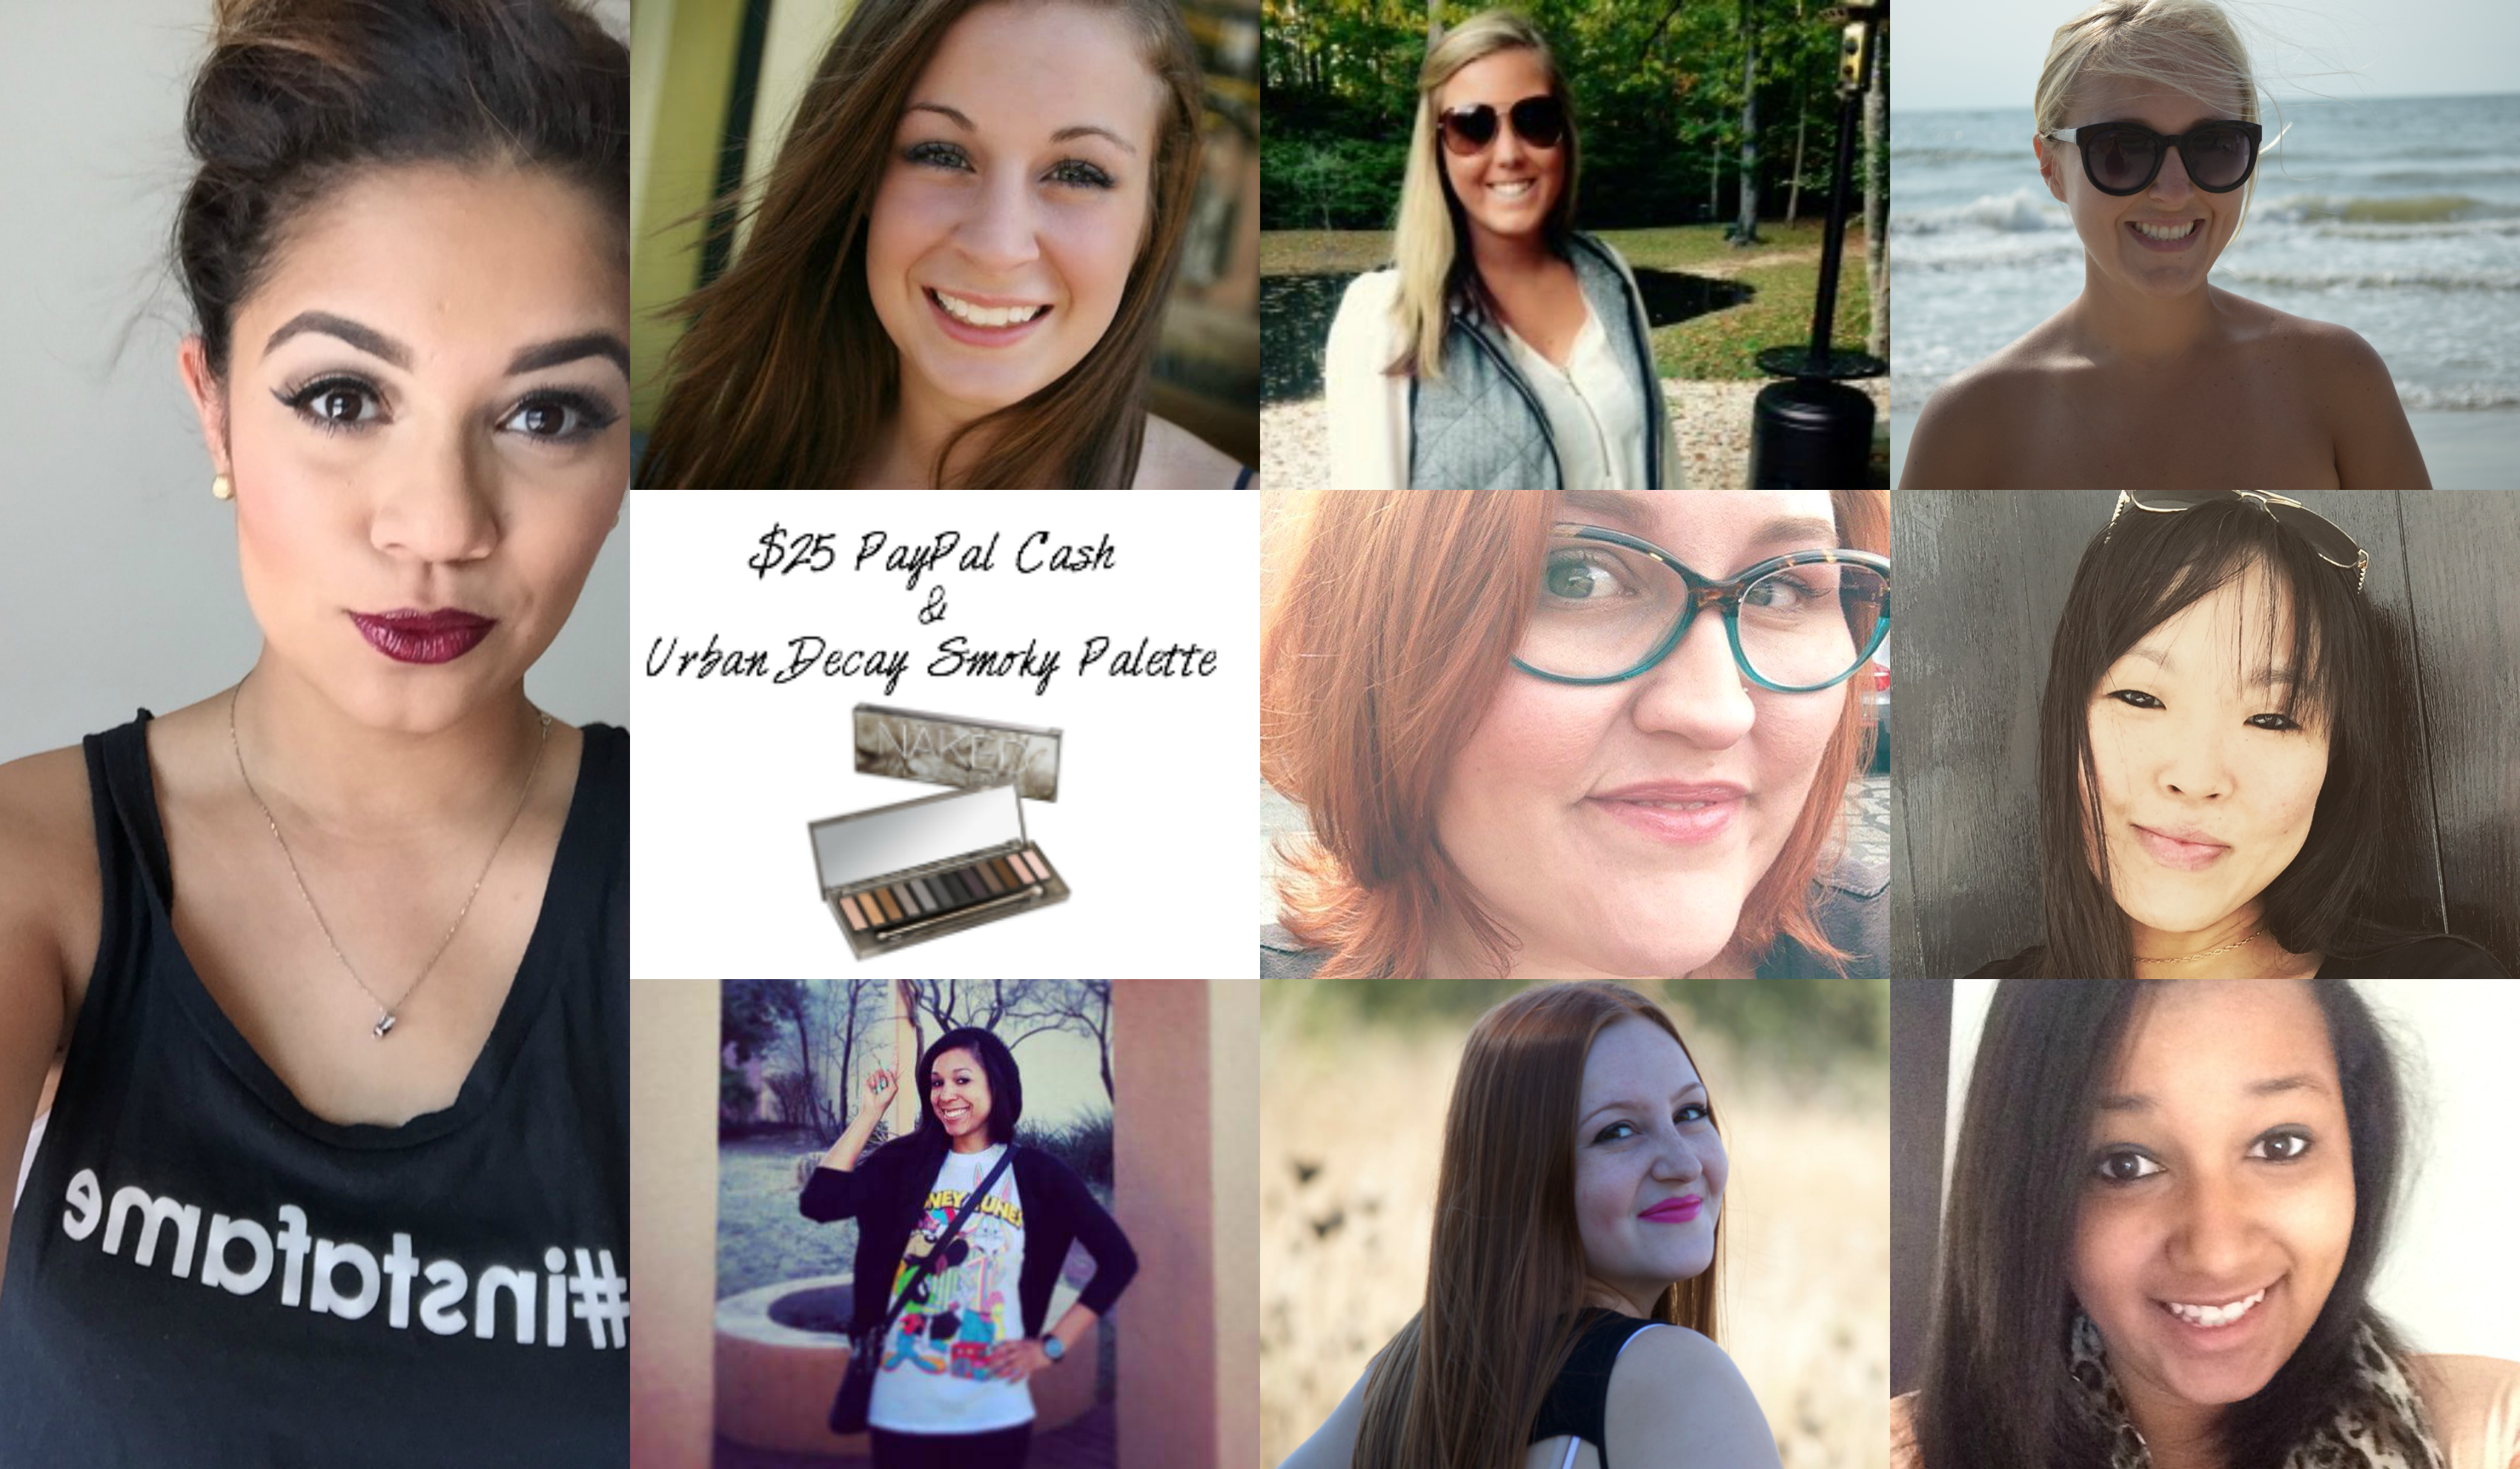 Enter to win Paypal Cash & and Urban Decay Smokey Eye Palette